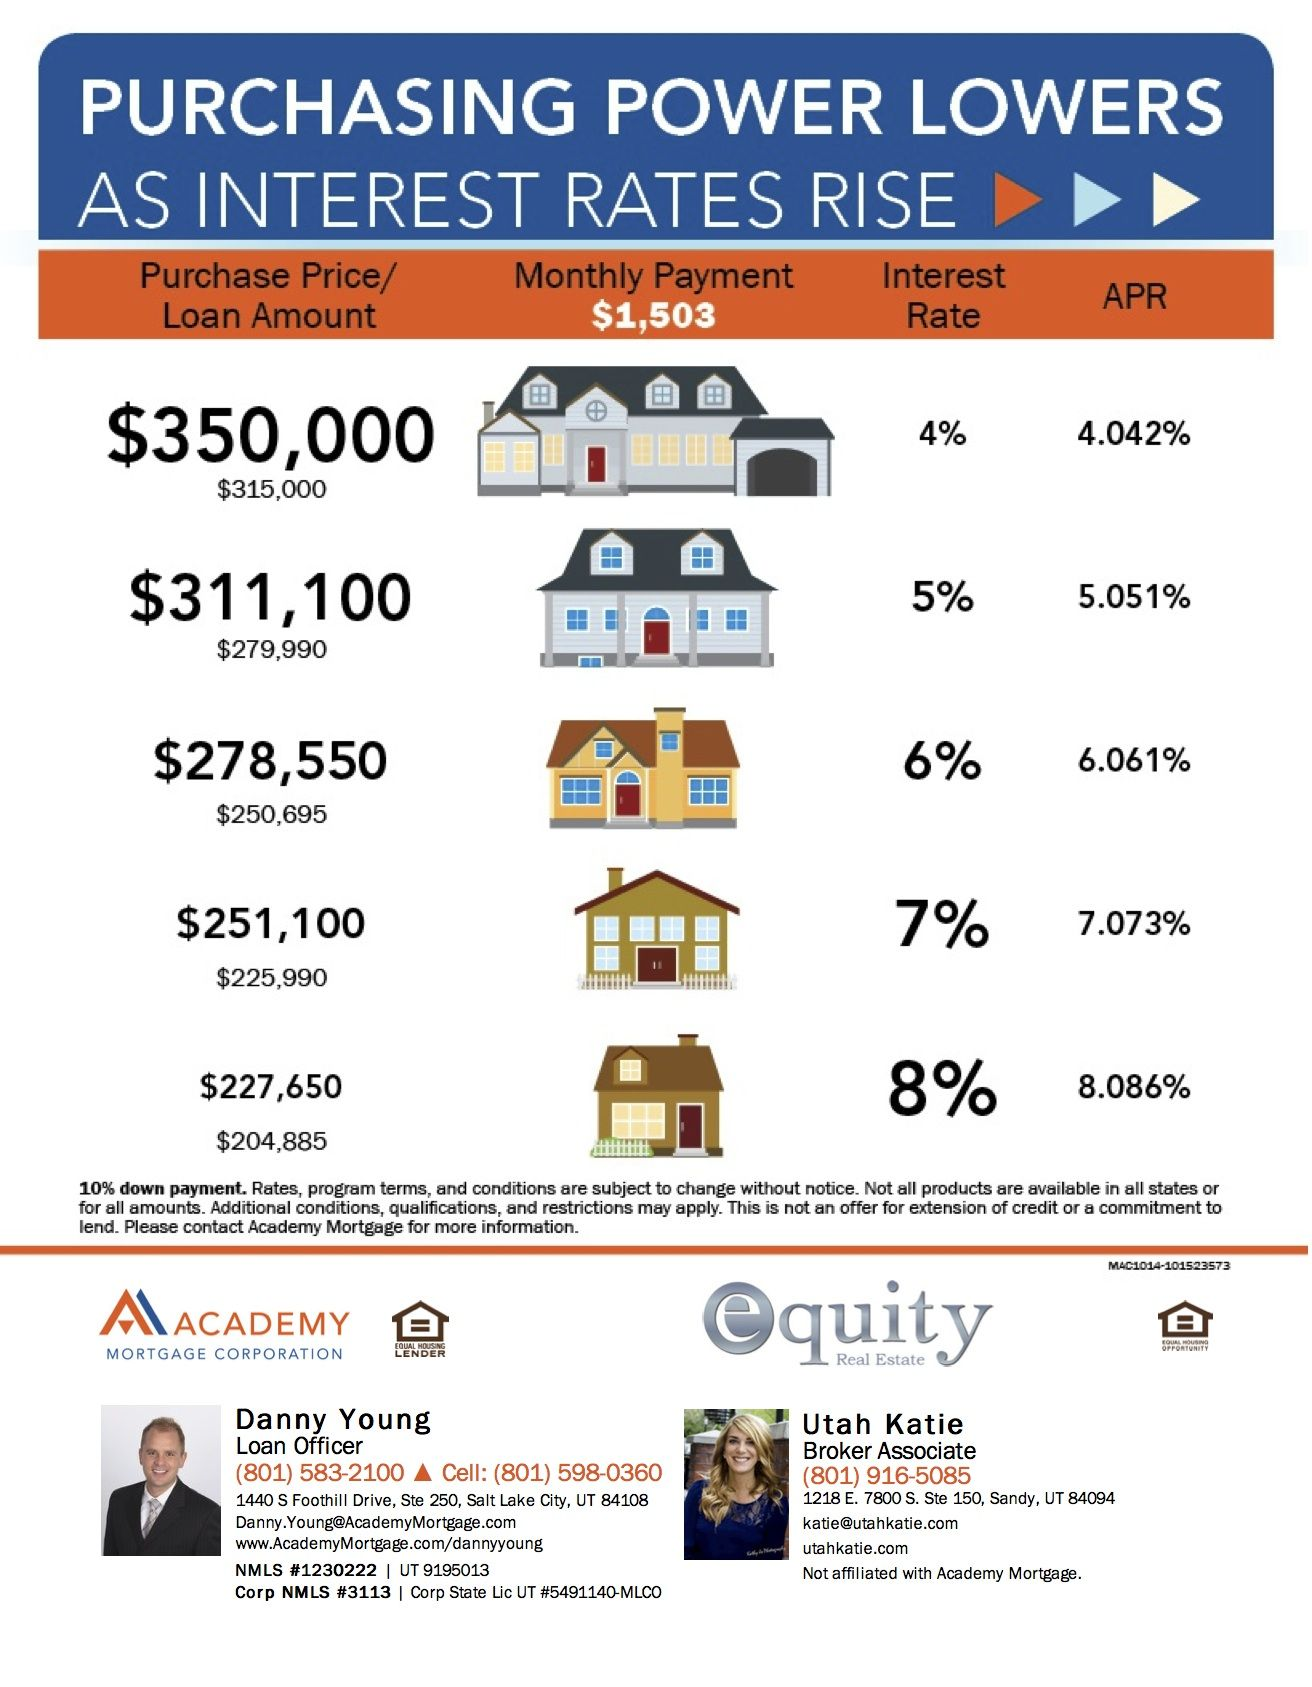 Illustrates how purchasing power lowers as interest rates